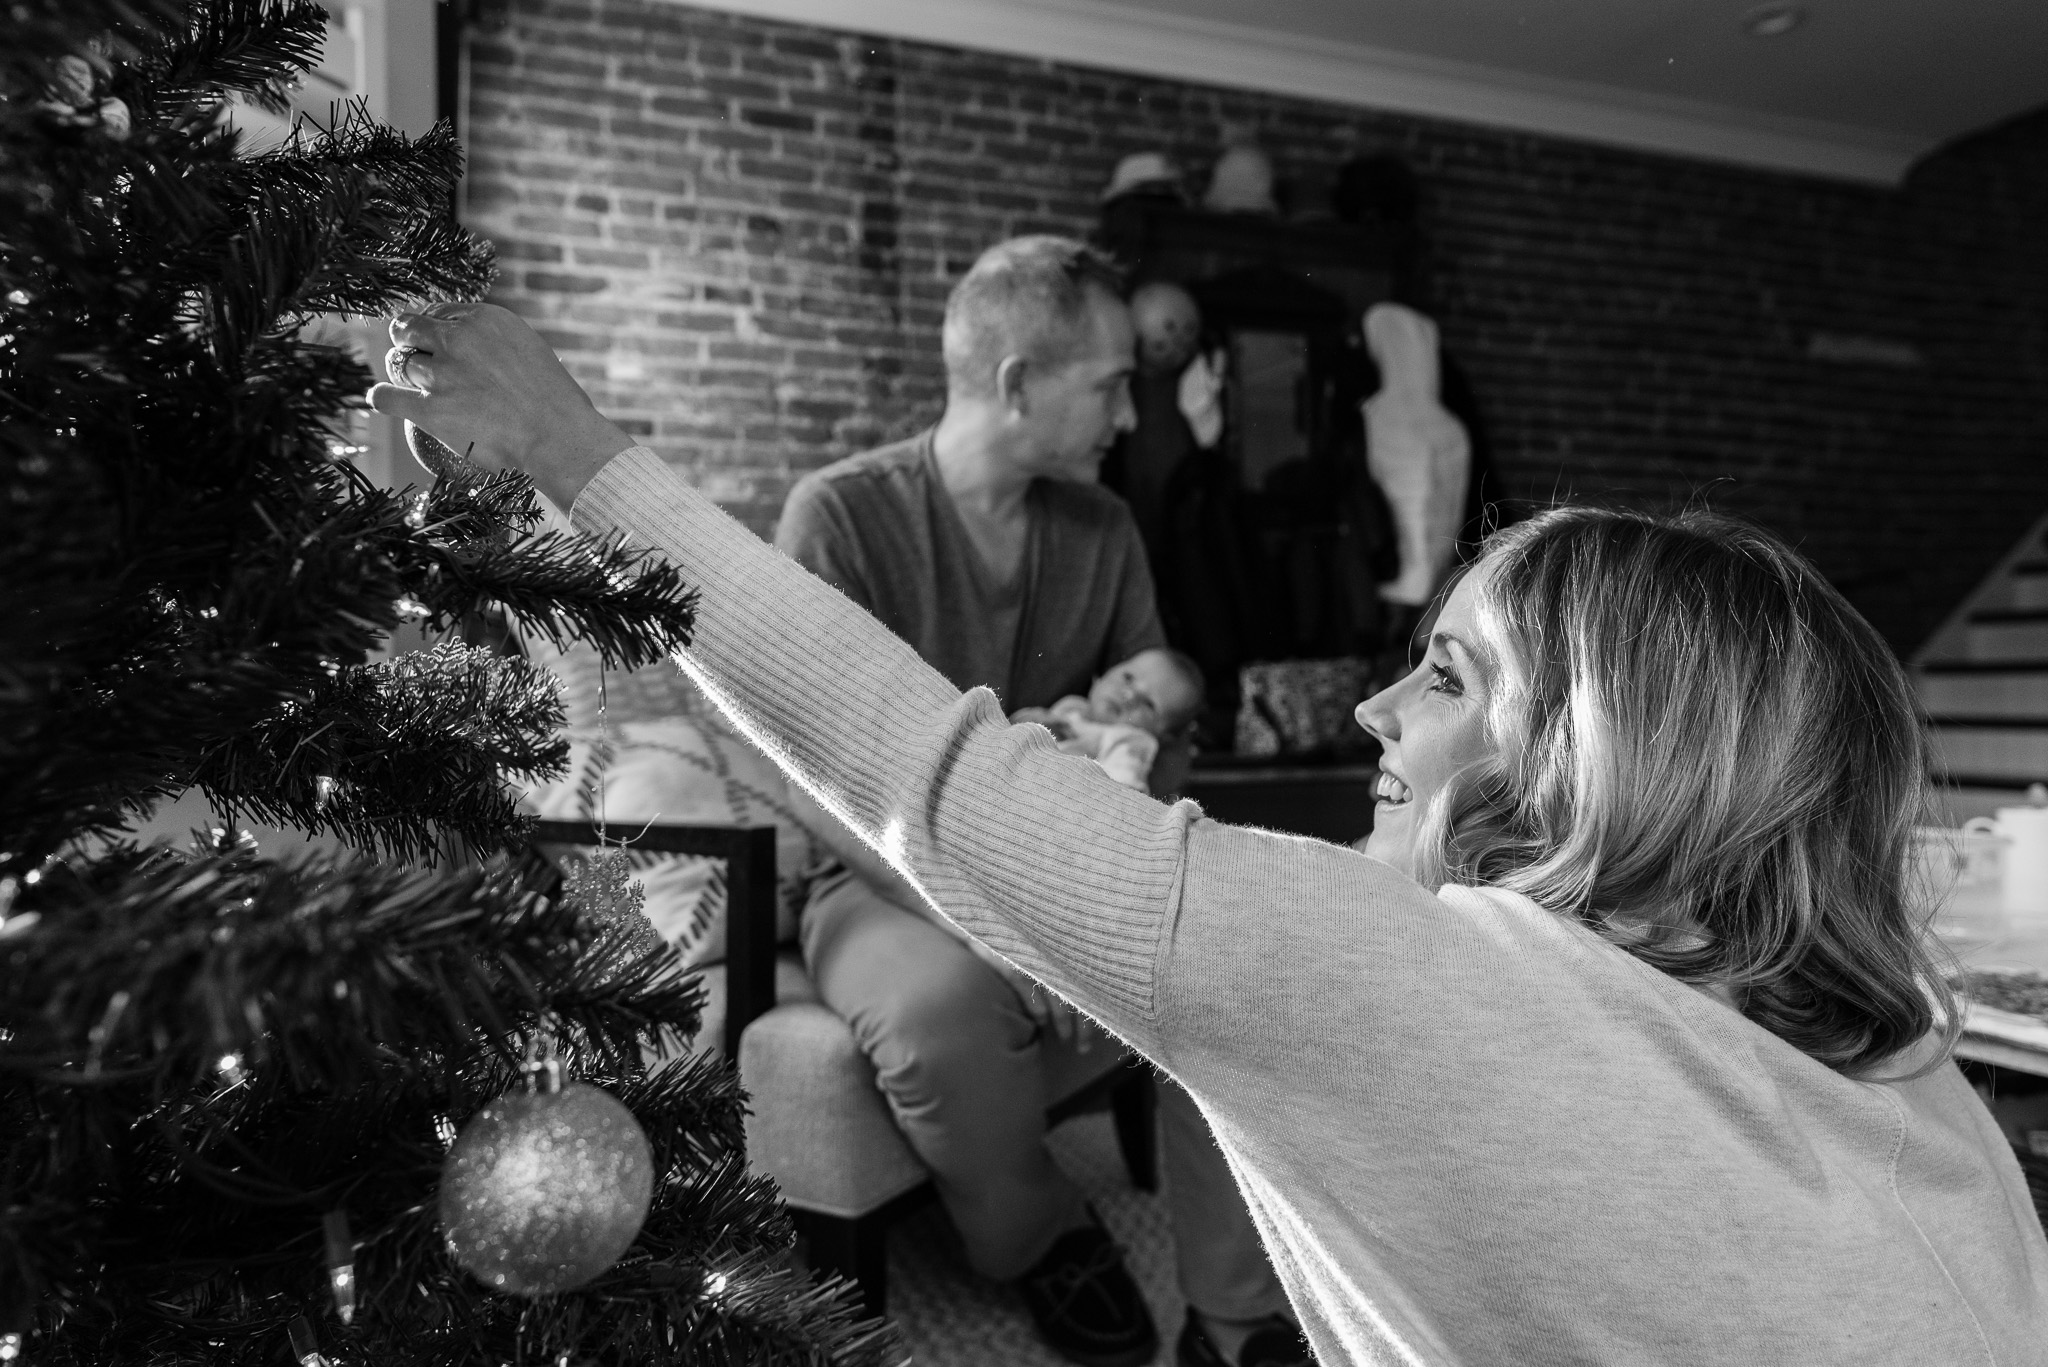 Family decorating Christmas tree together in Washington, DC